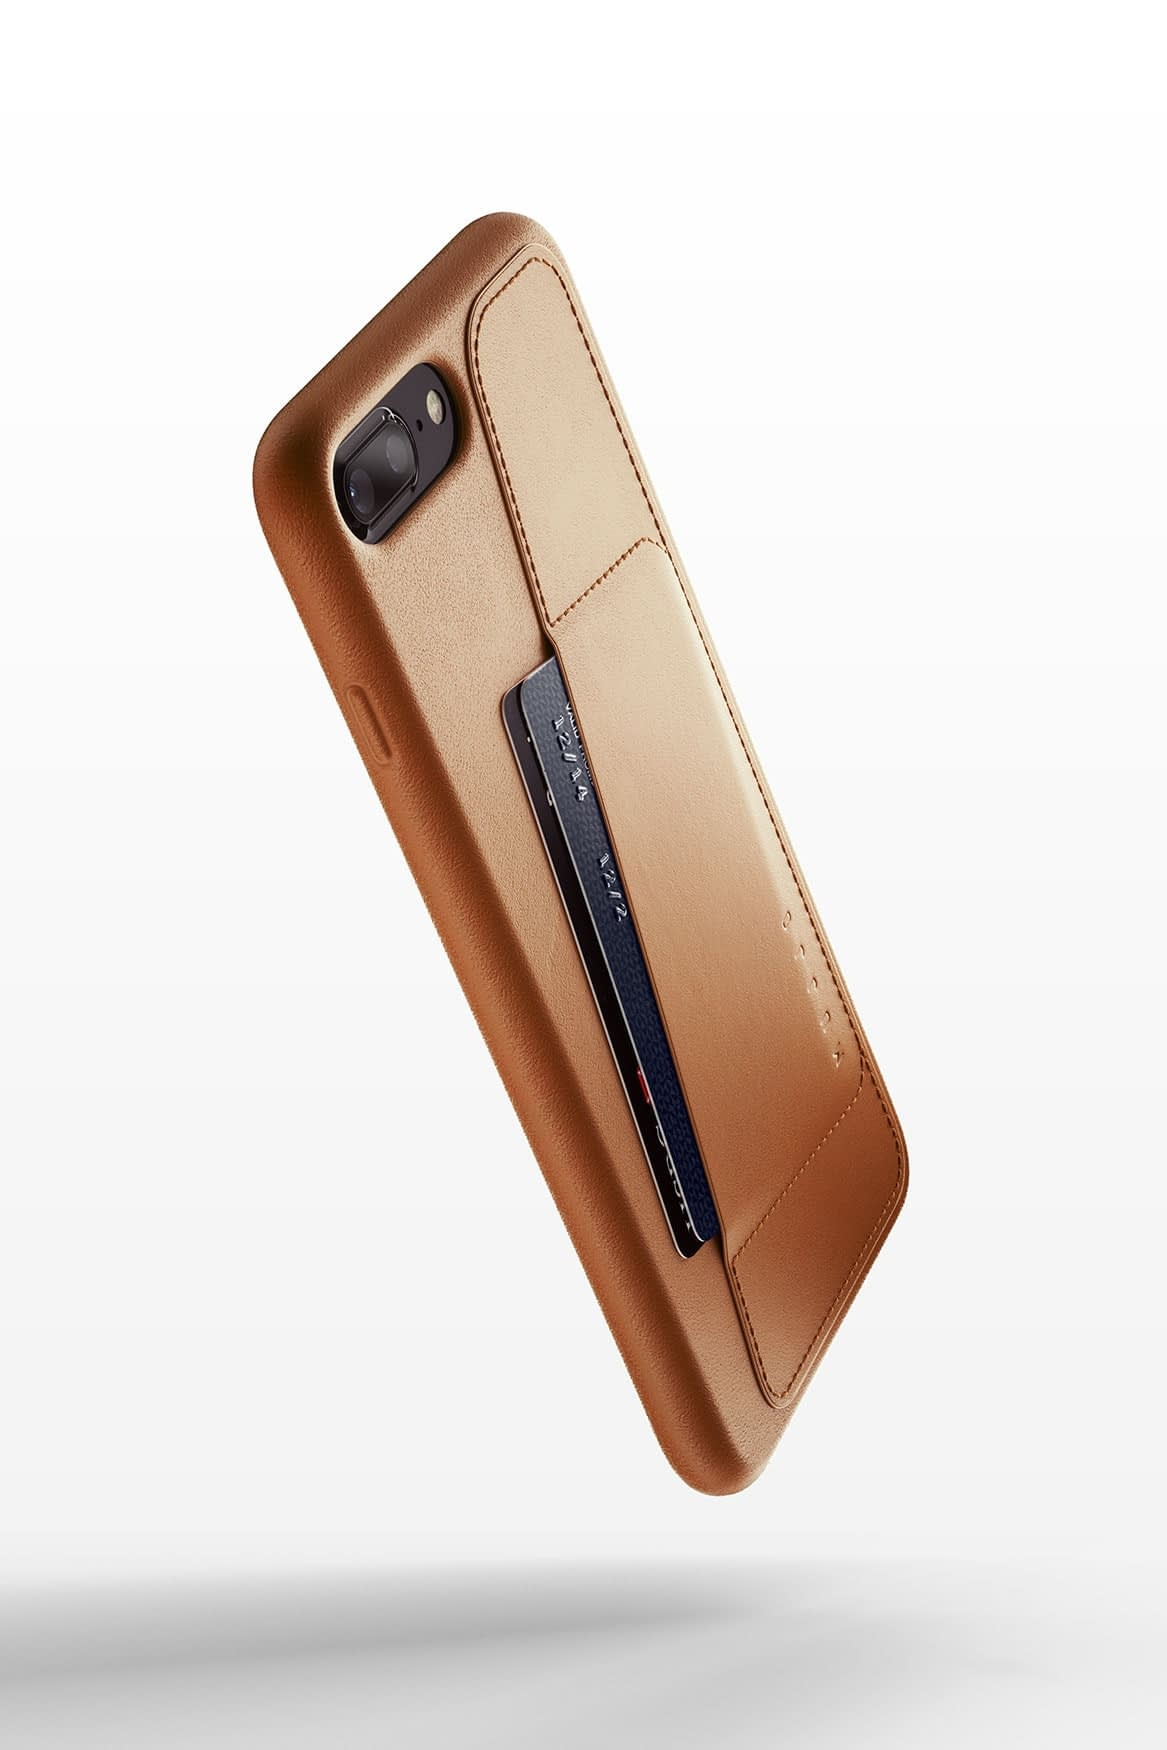 Full leather wallet case for iPhone 8 Plus Tan 01